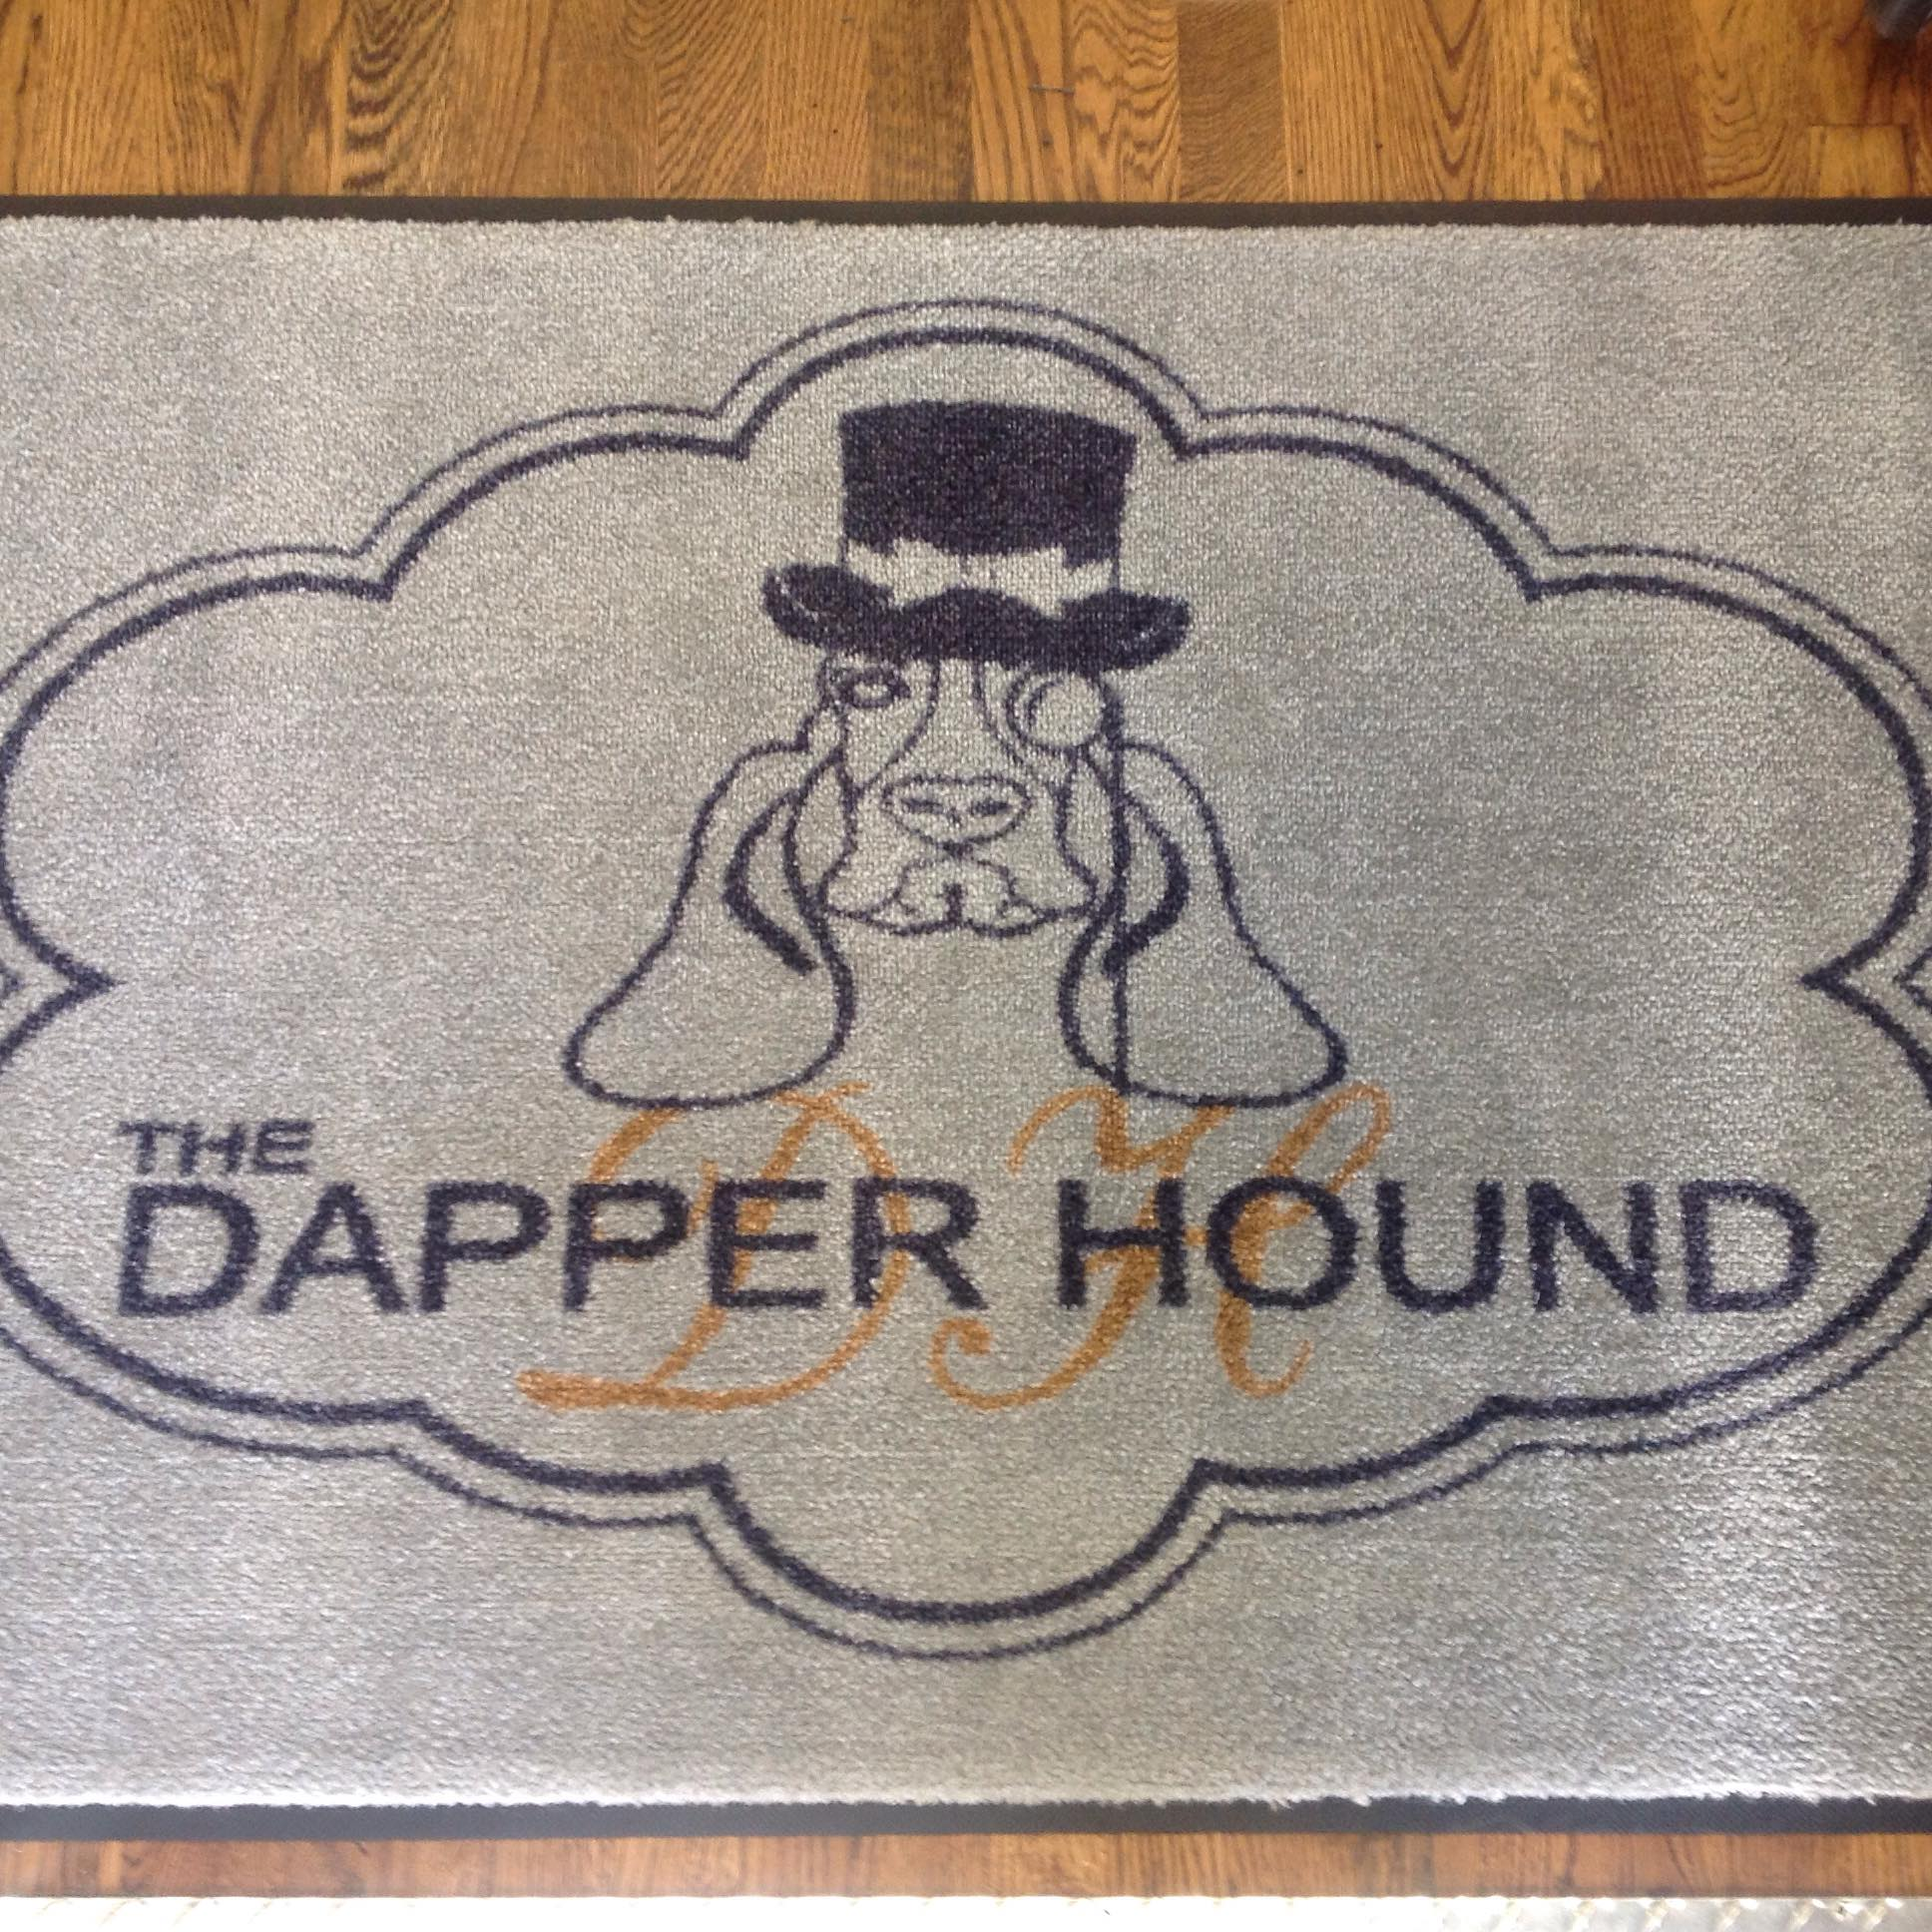 The Dapper Hound<br>Mt. Airy, NC